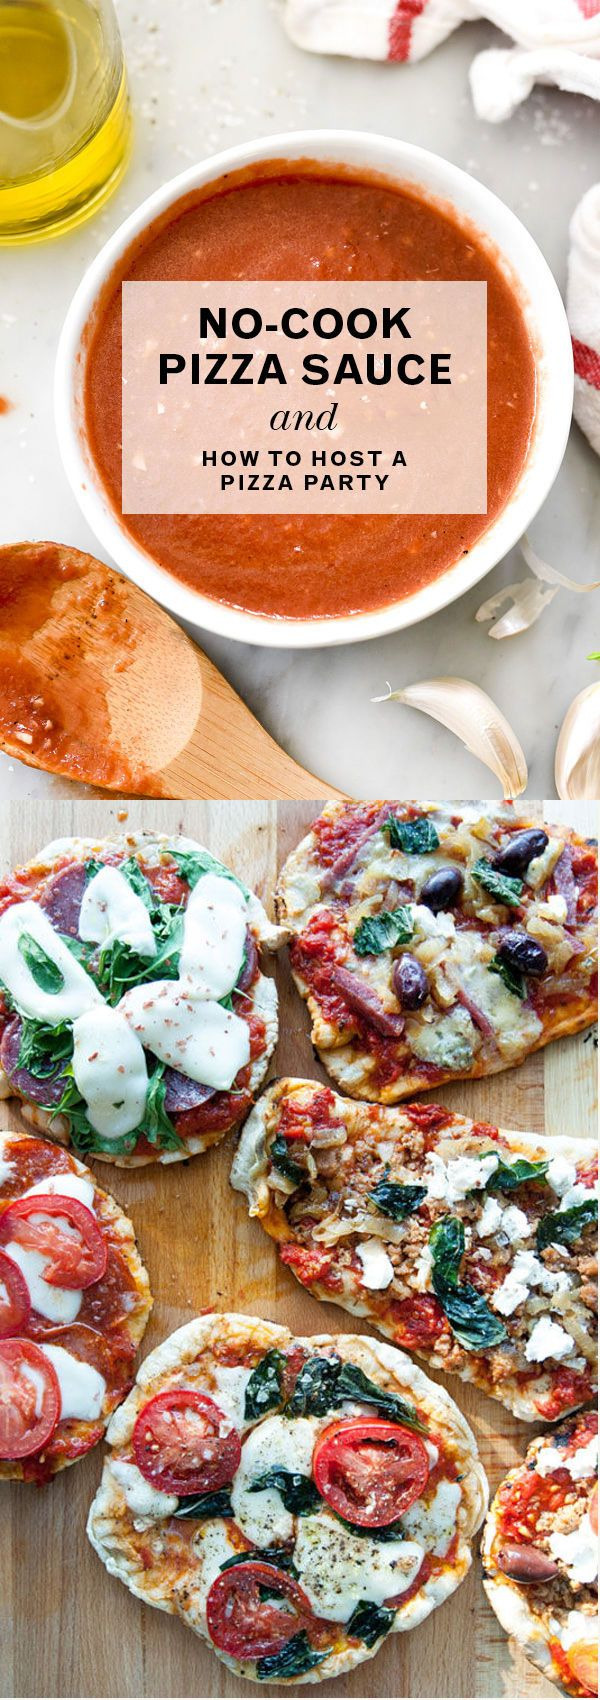 4-Ingredient, No-Cook Pizza Sauce makes throwing a pizza party easy